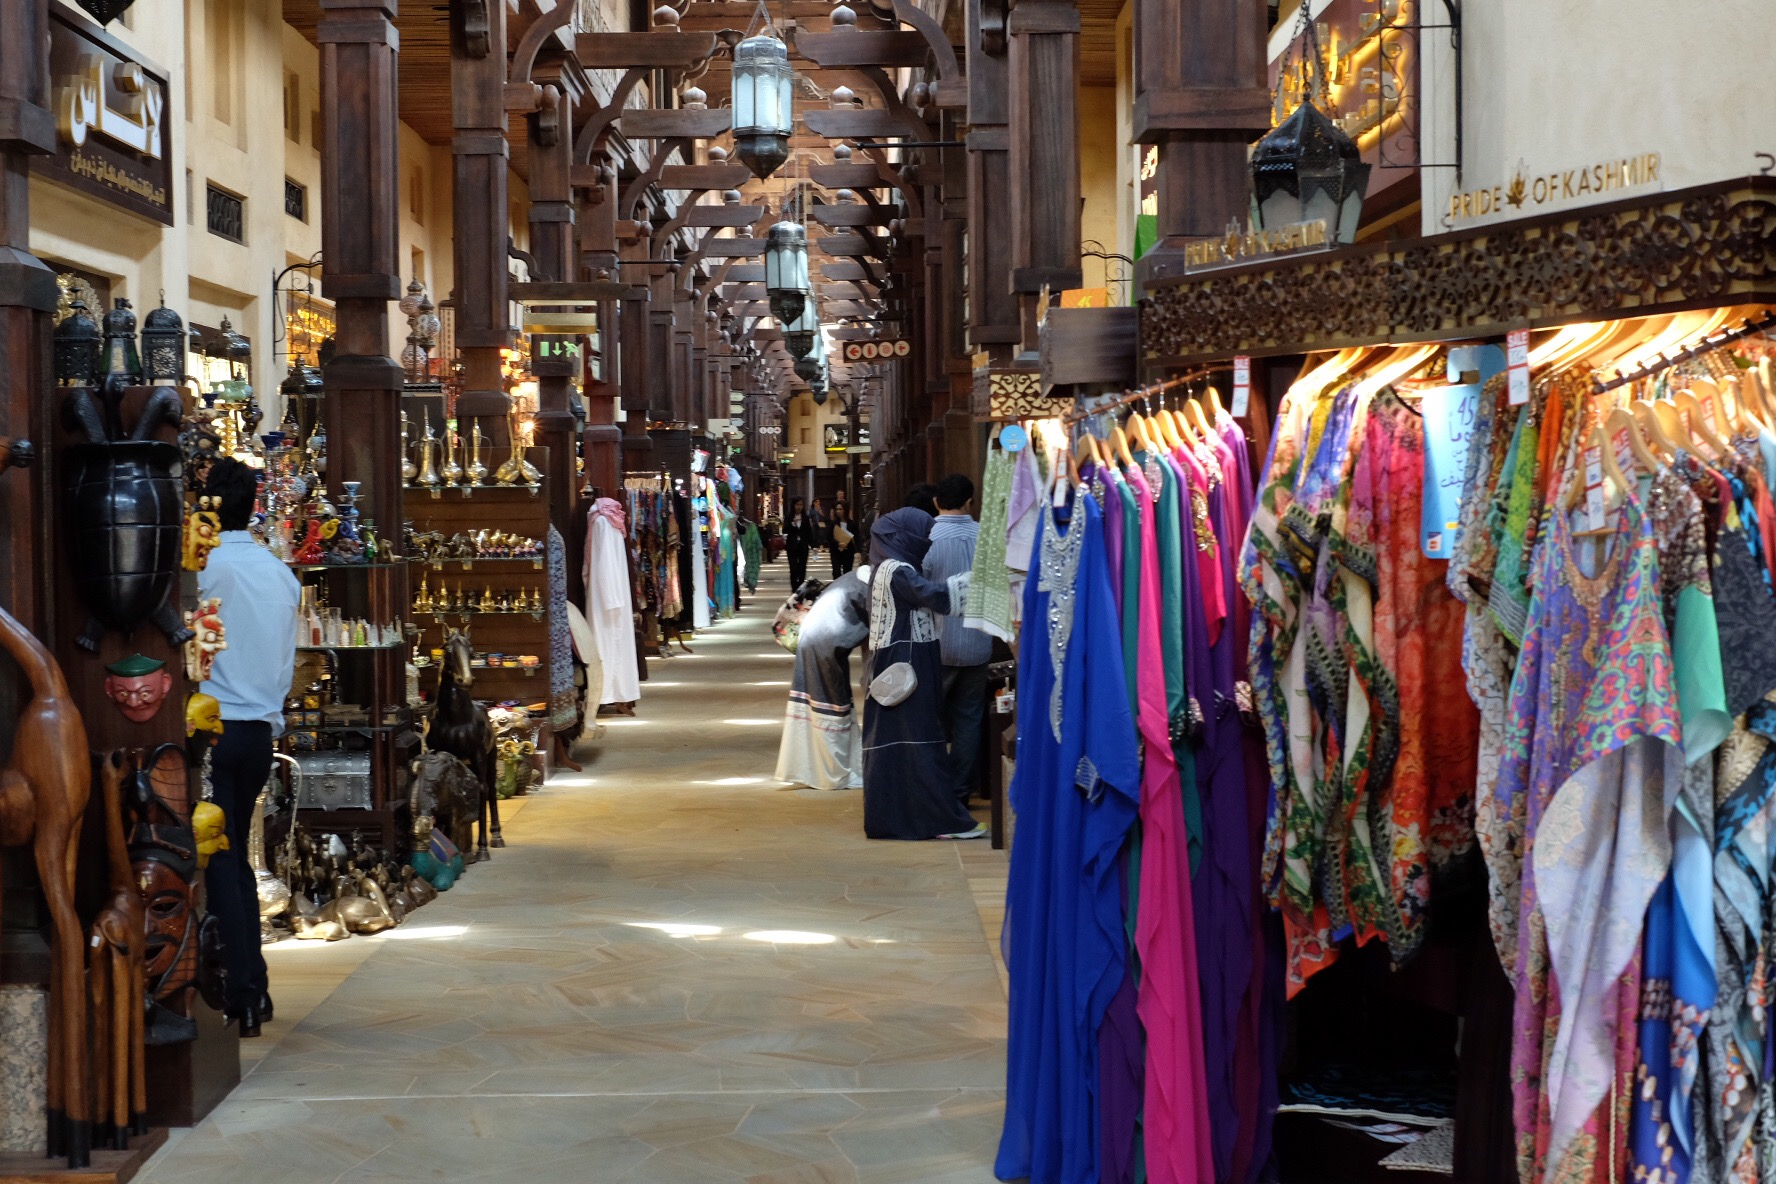 Dubai shopping festival 2020-21: All you need to know